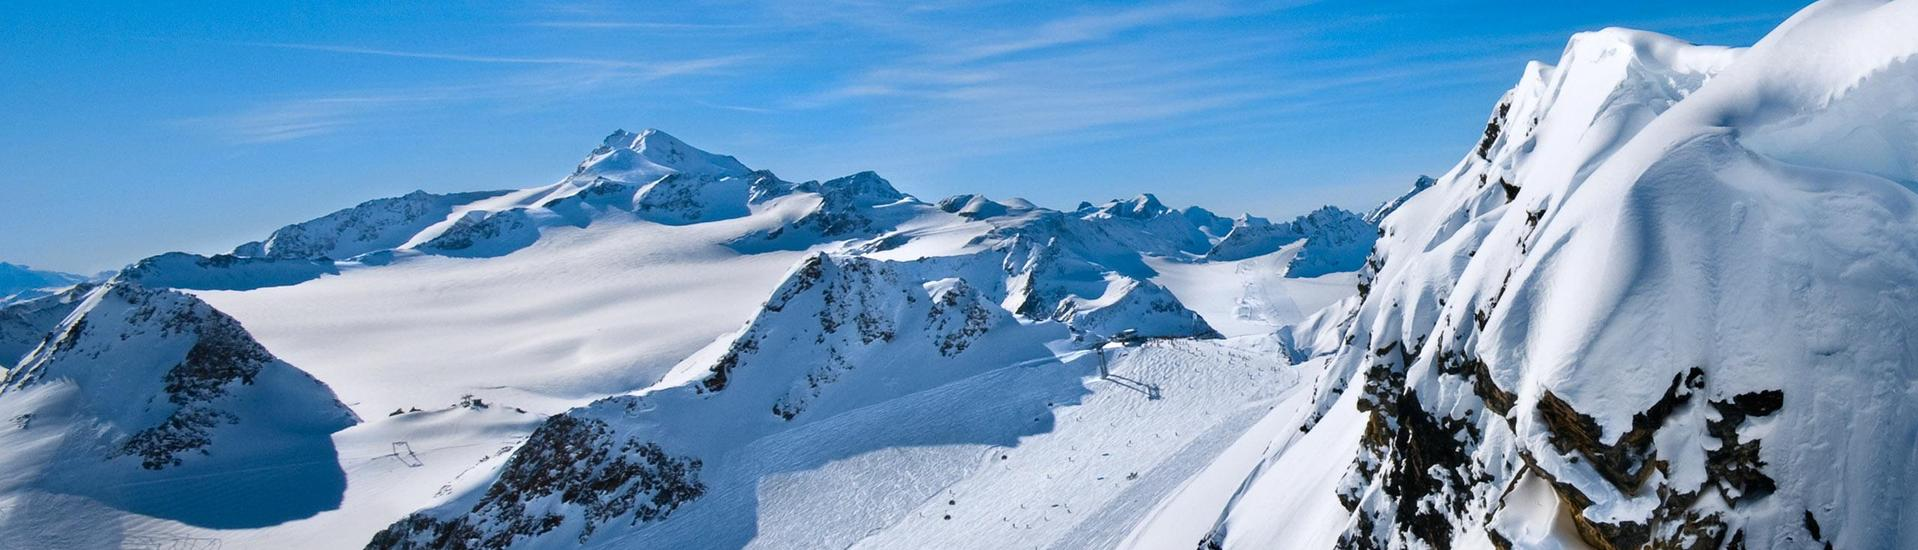 A view of a snowy mountain top in the ski resort of Risoul, where ski schools gather to start their ski lessons.